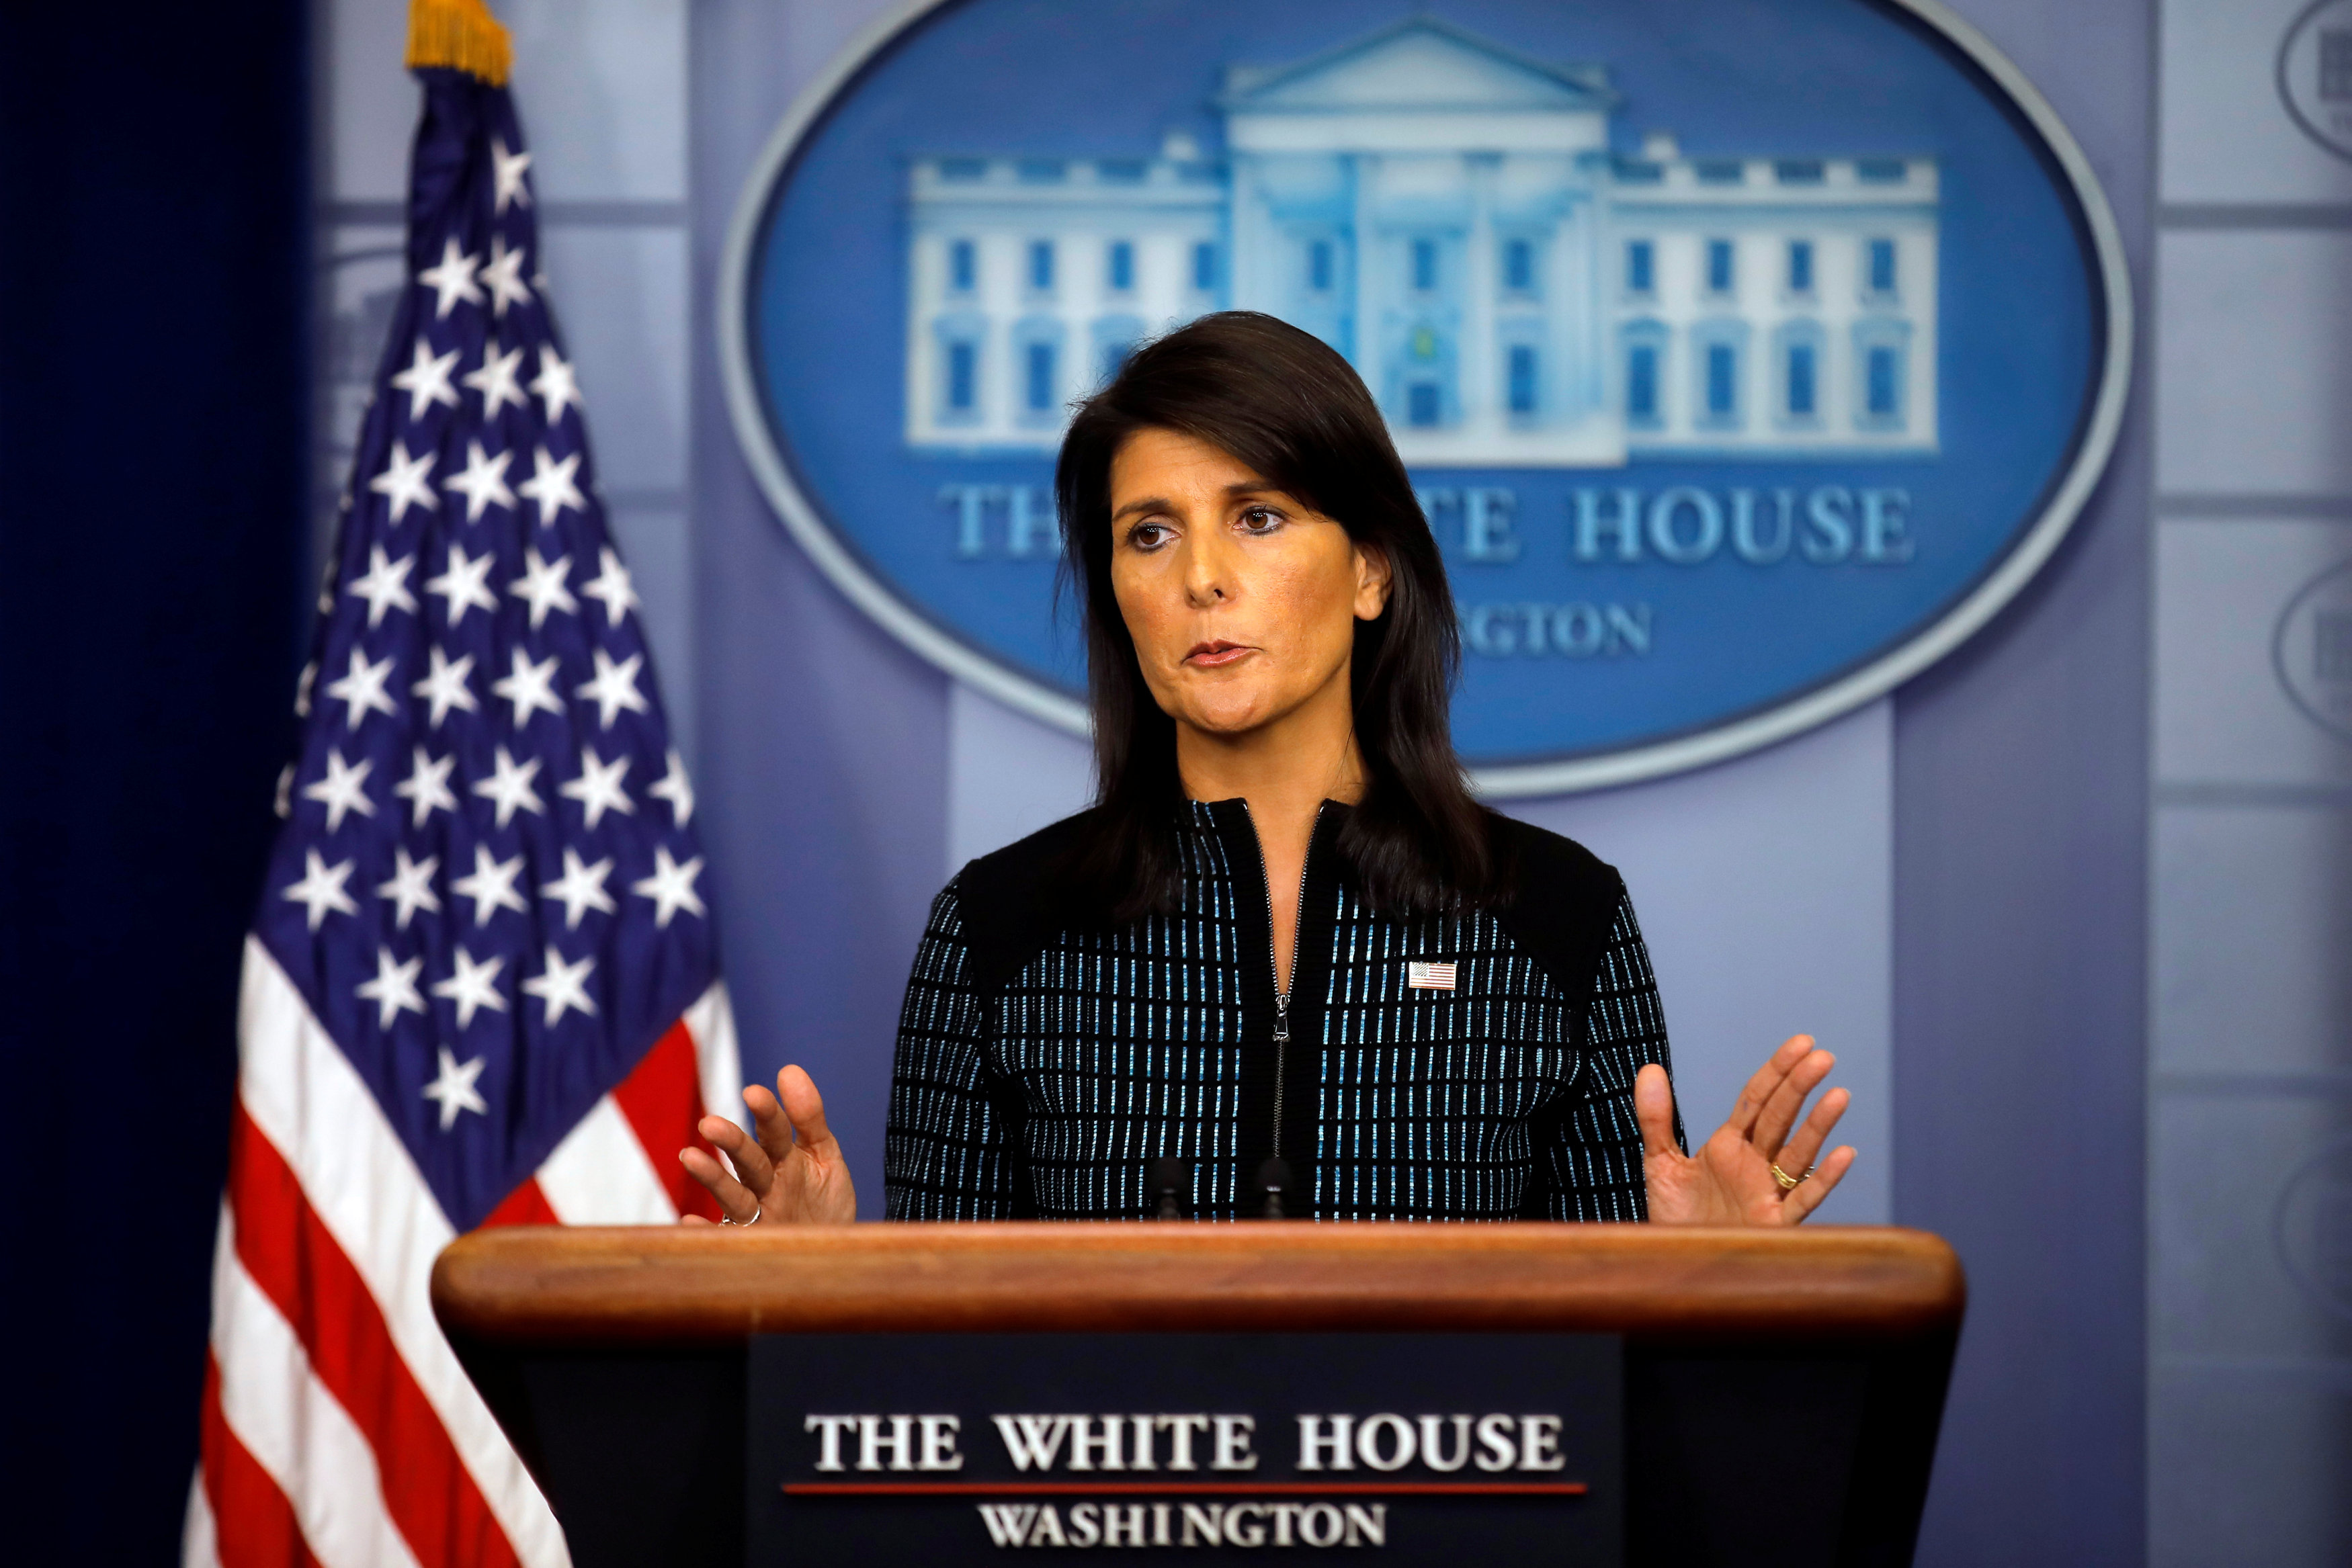 U.S. Ambassador to the UN, Nikki Haley attends the daily briefing at the White House in Washington on Sept. 15, 2017. (REUTERS/Carlos Barria)